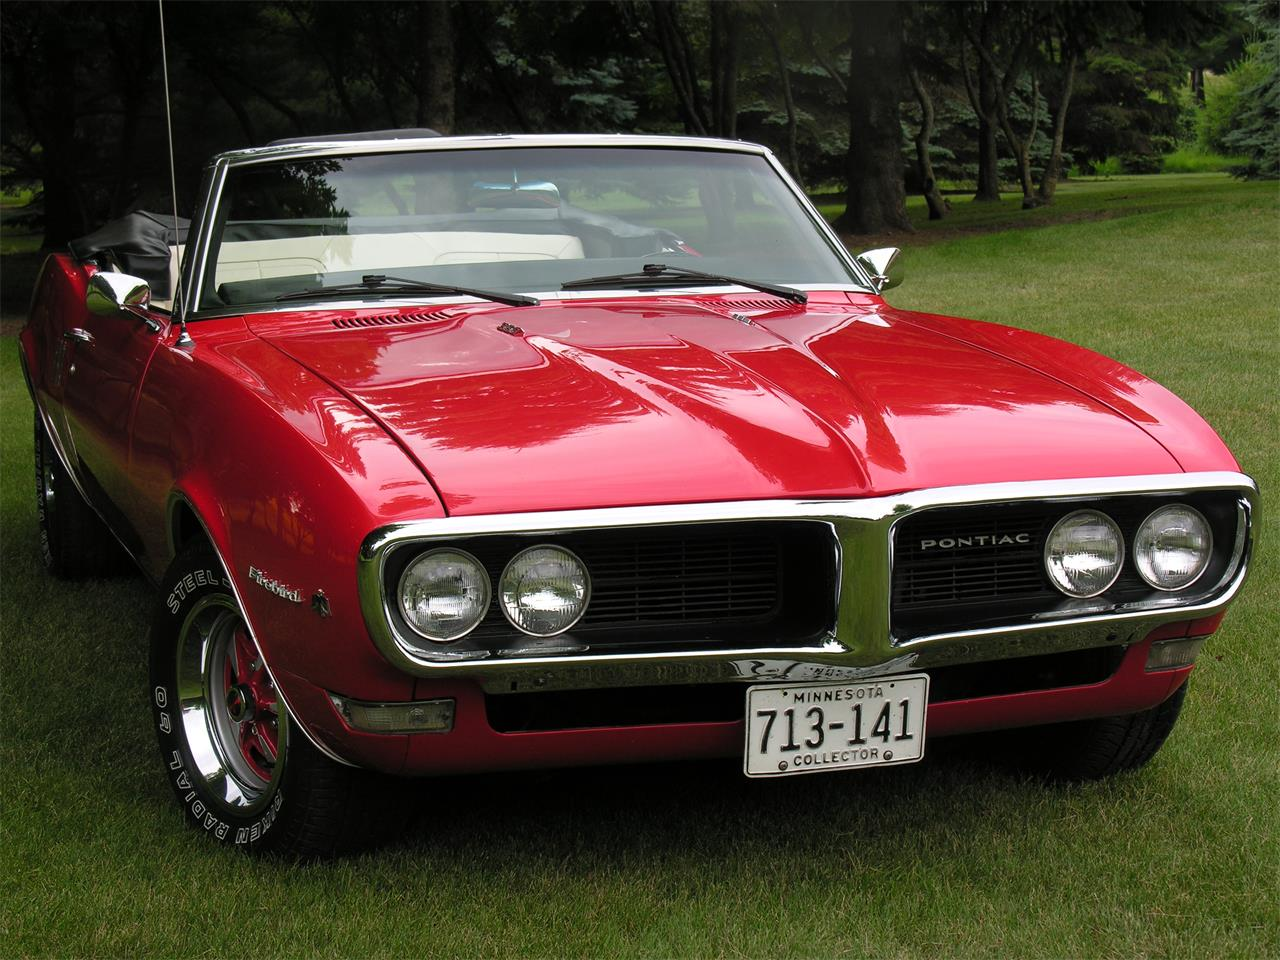 Large Picture of 1968 Pontiac Firebird located in Minnesota - $24,900.00 - L9RM